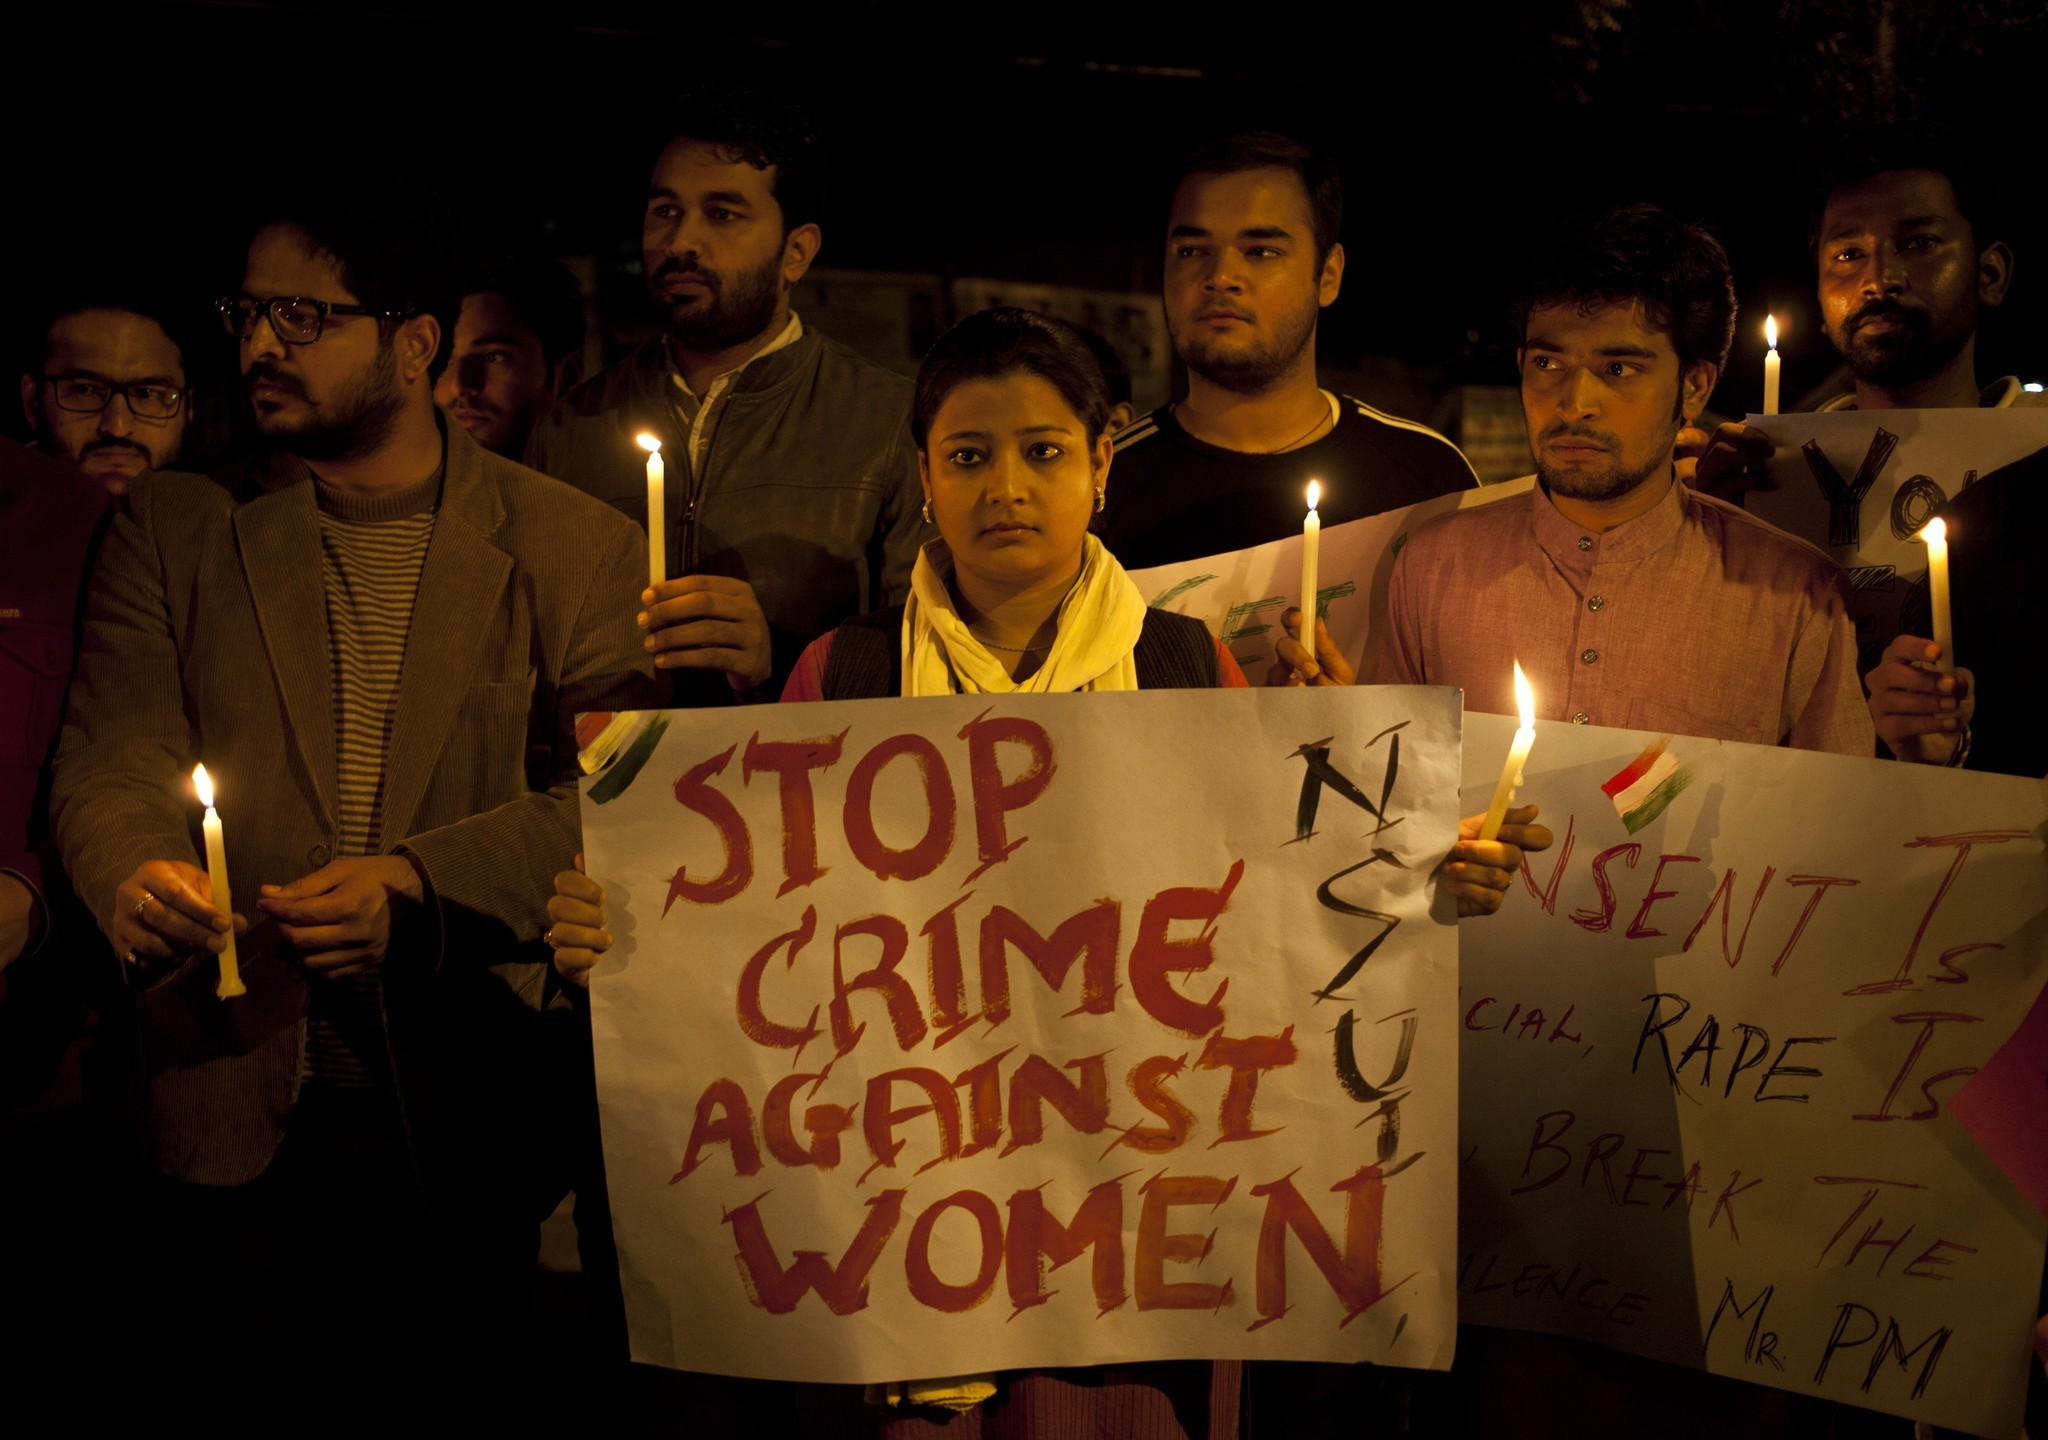 Indian officials ban BBC documentary interview with convicted rapist